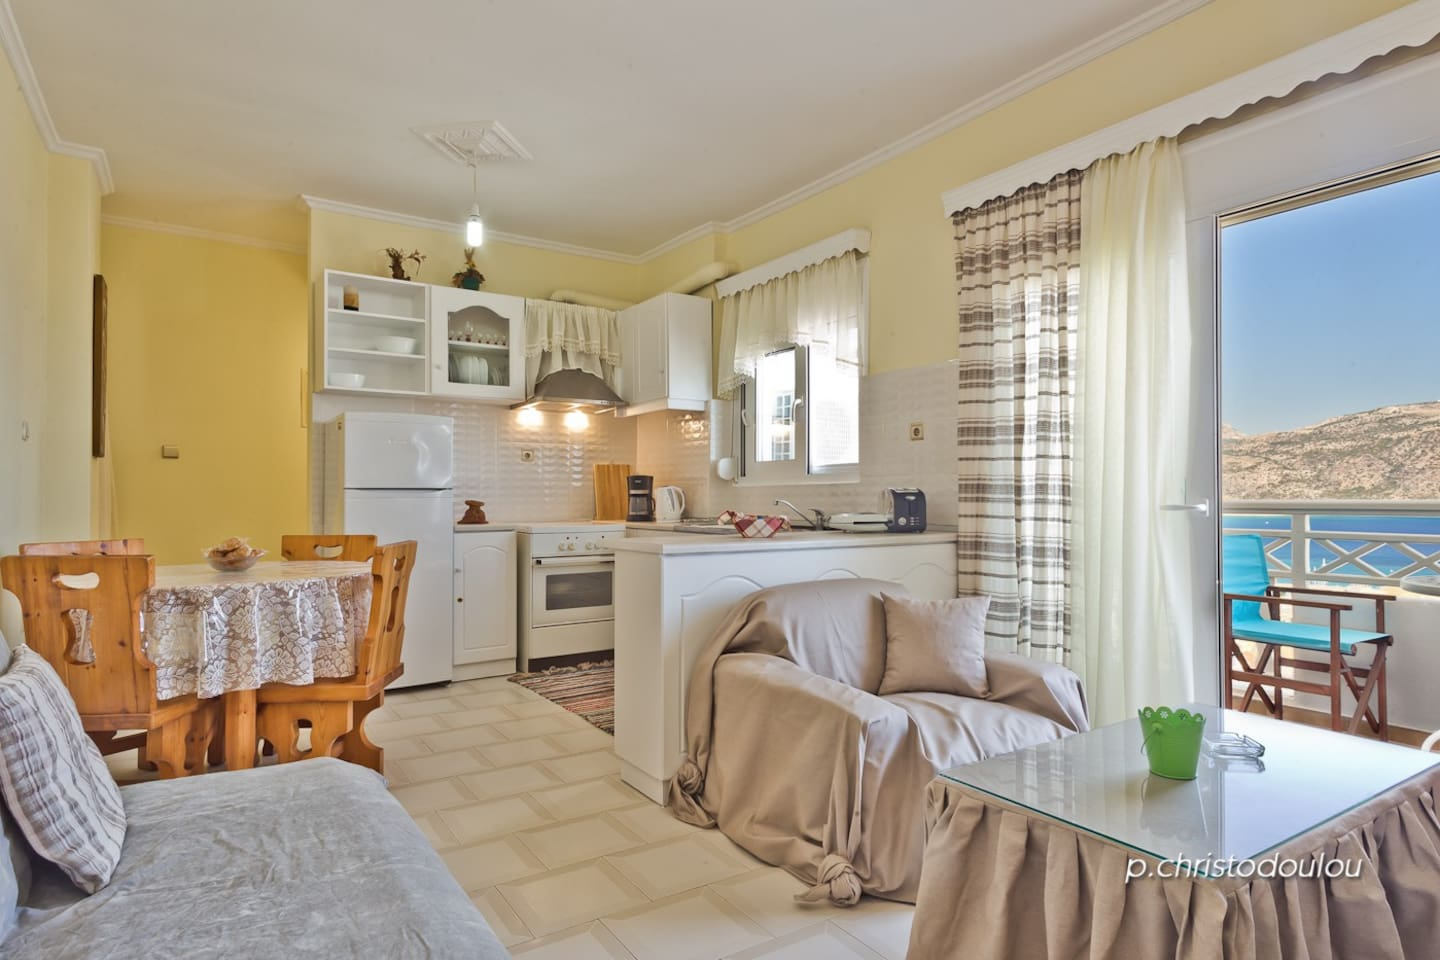 Amalia\'s Apartment in Pigadia, Karpathos - Διαμερίσματα προς ...